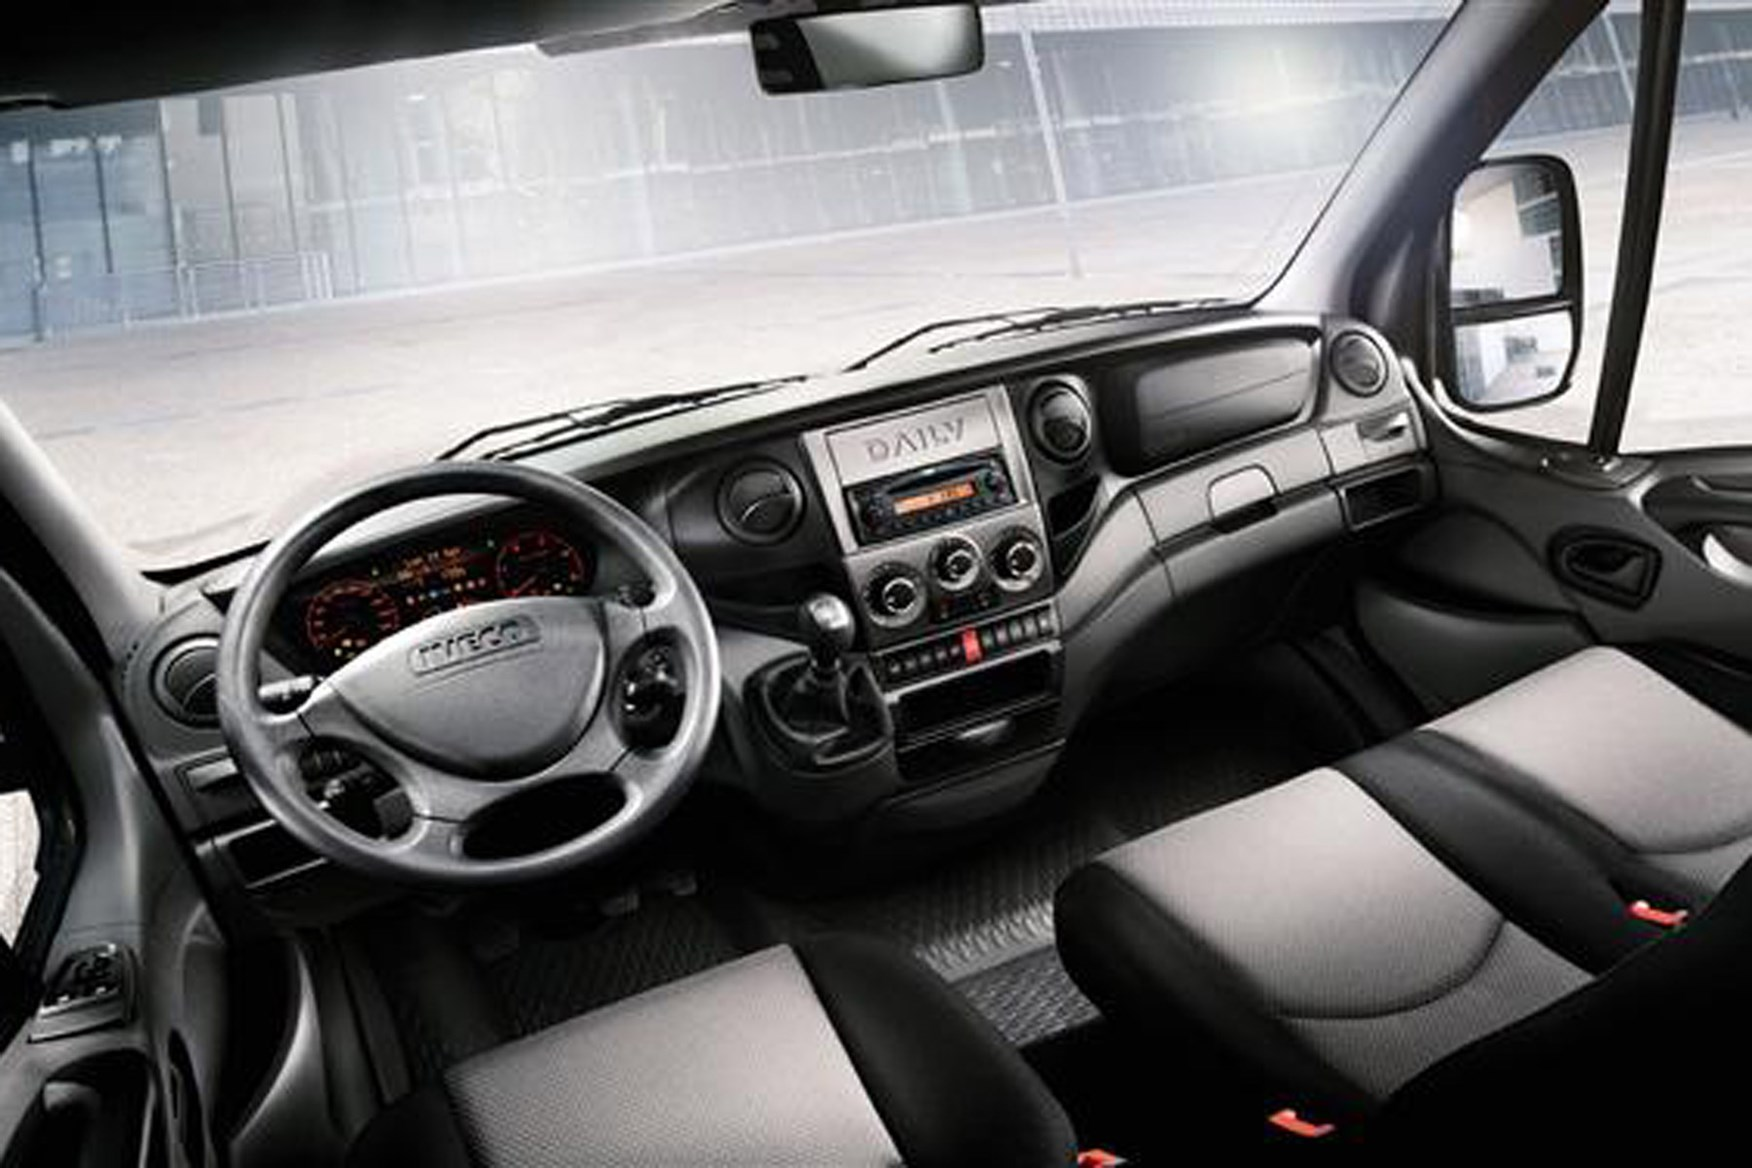 Iveco Daily 2009-2012 review on Parkers Vans - cabin, interior